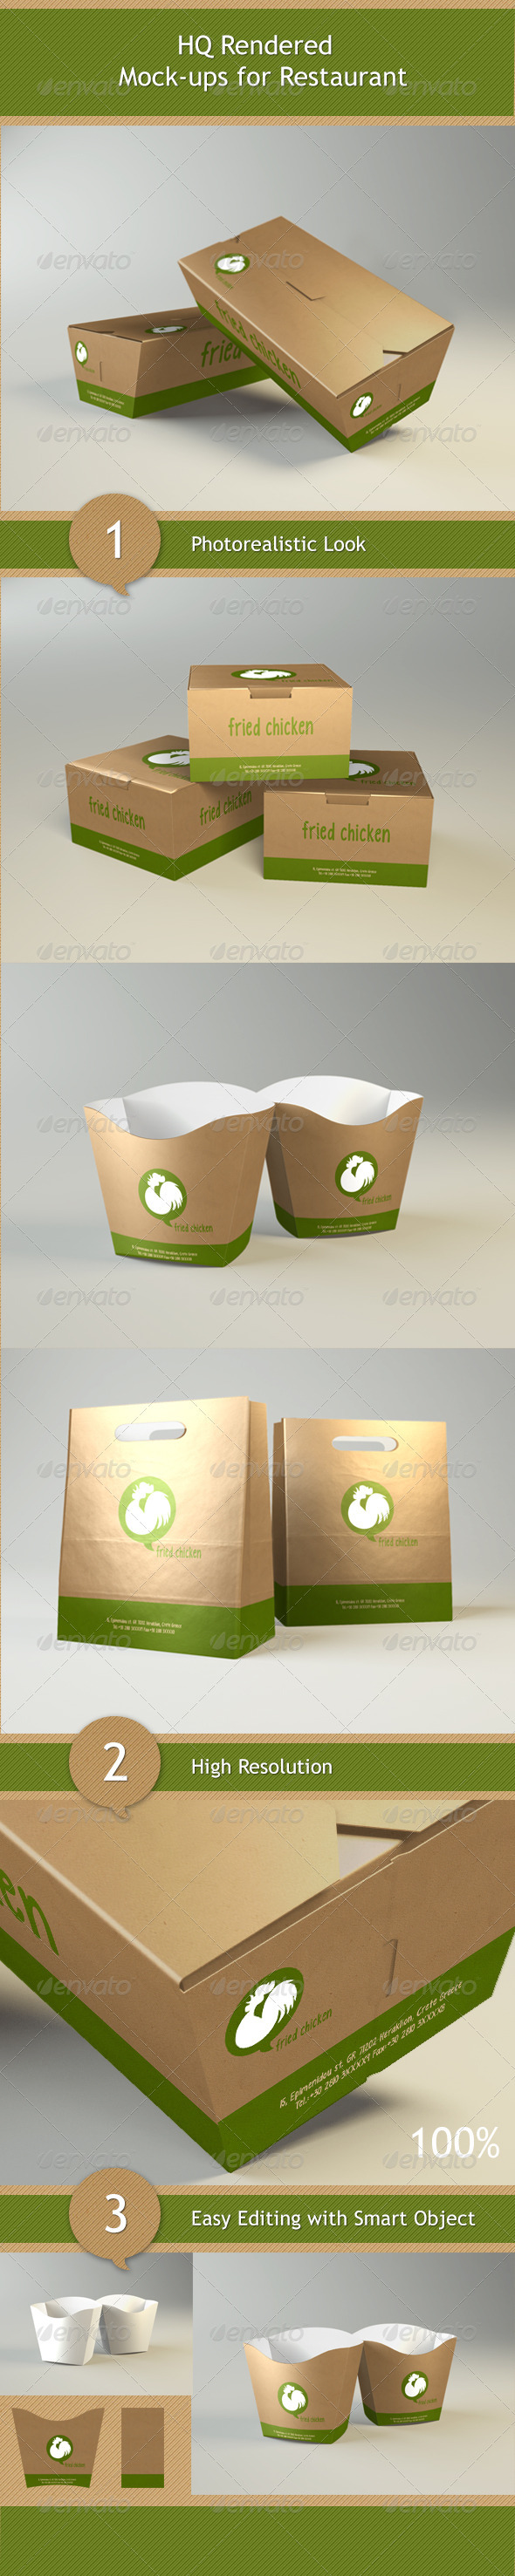 Mock-ups for Restaurant - Food and Drink Packaging